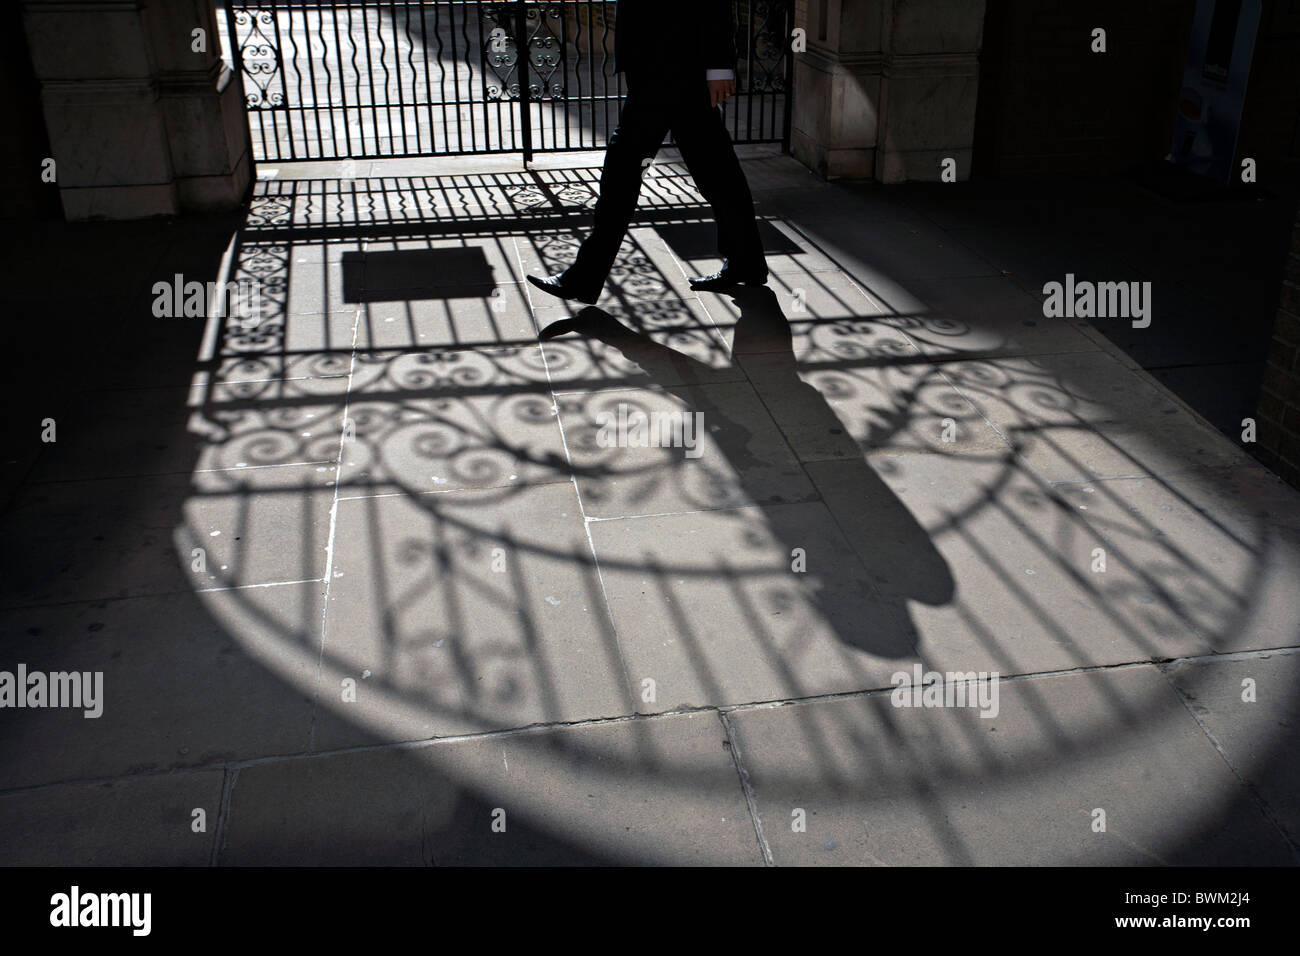 man walking outside nevis marks synagogue in london - Stock Image